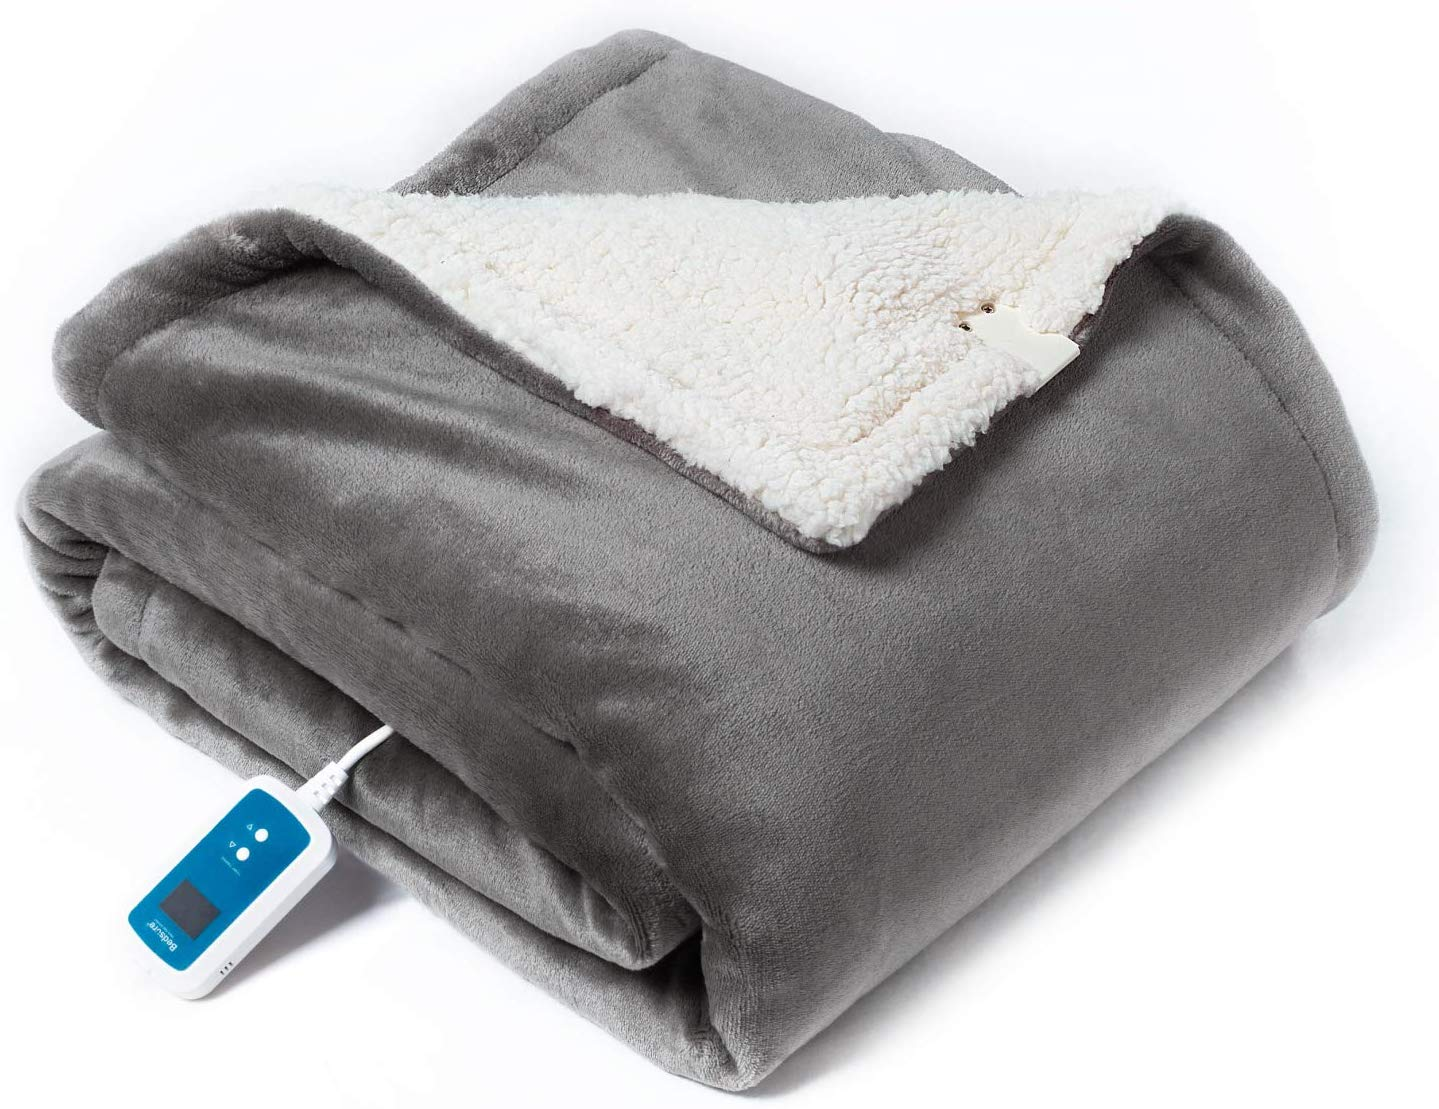 Bedsure Washable Electric Heated Blanket Throw, 50x70 inches - Low-Voltage Fast Heating Blanket with 21 Heat Settings, Auto Shut-Off, Overheating Protection